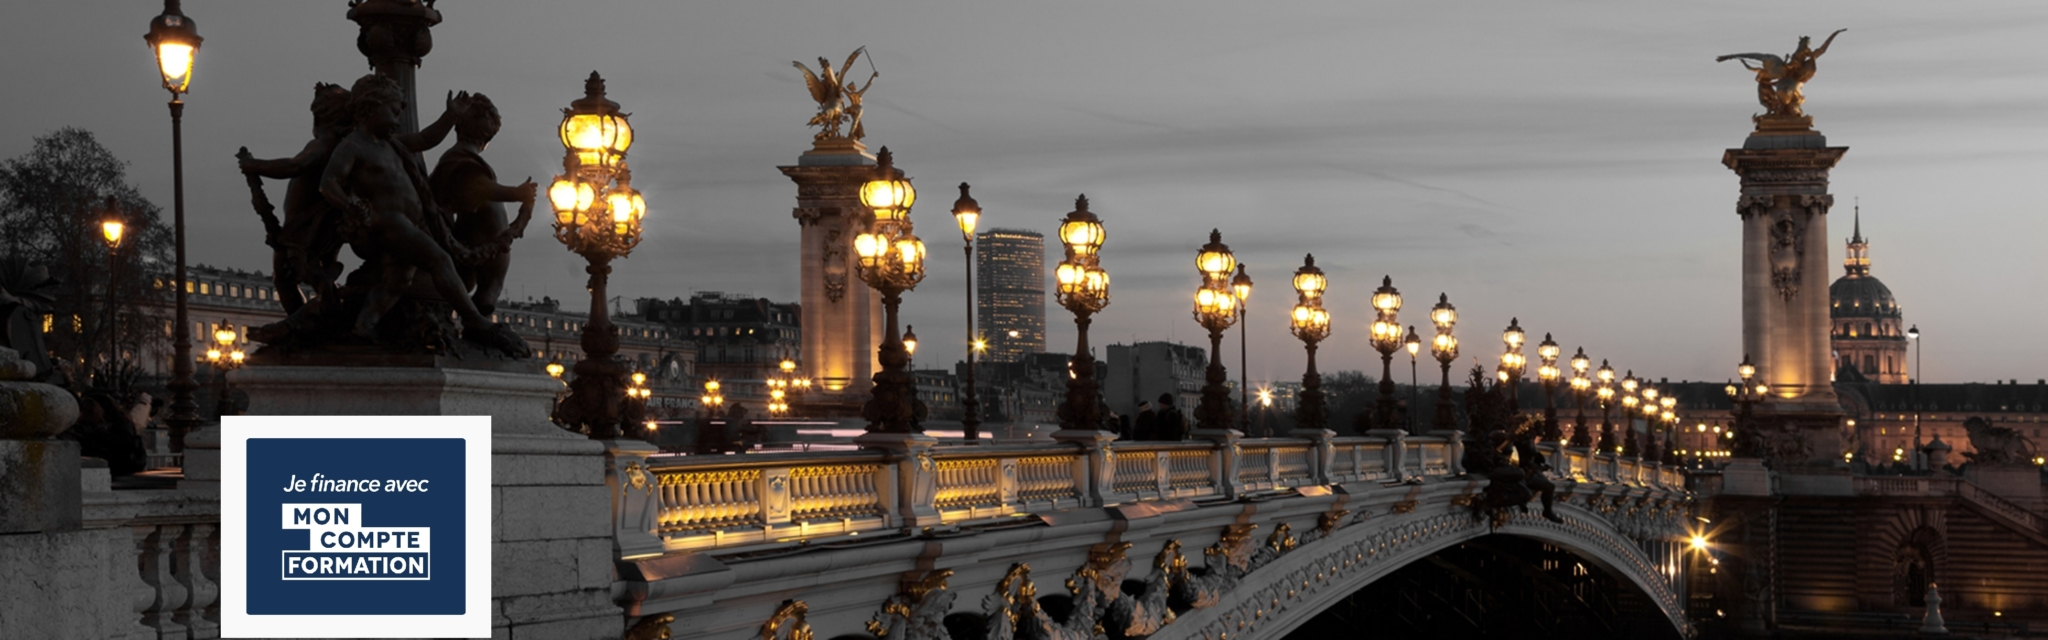 PONT PARIS 2